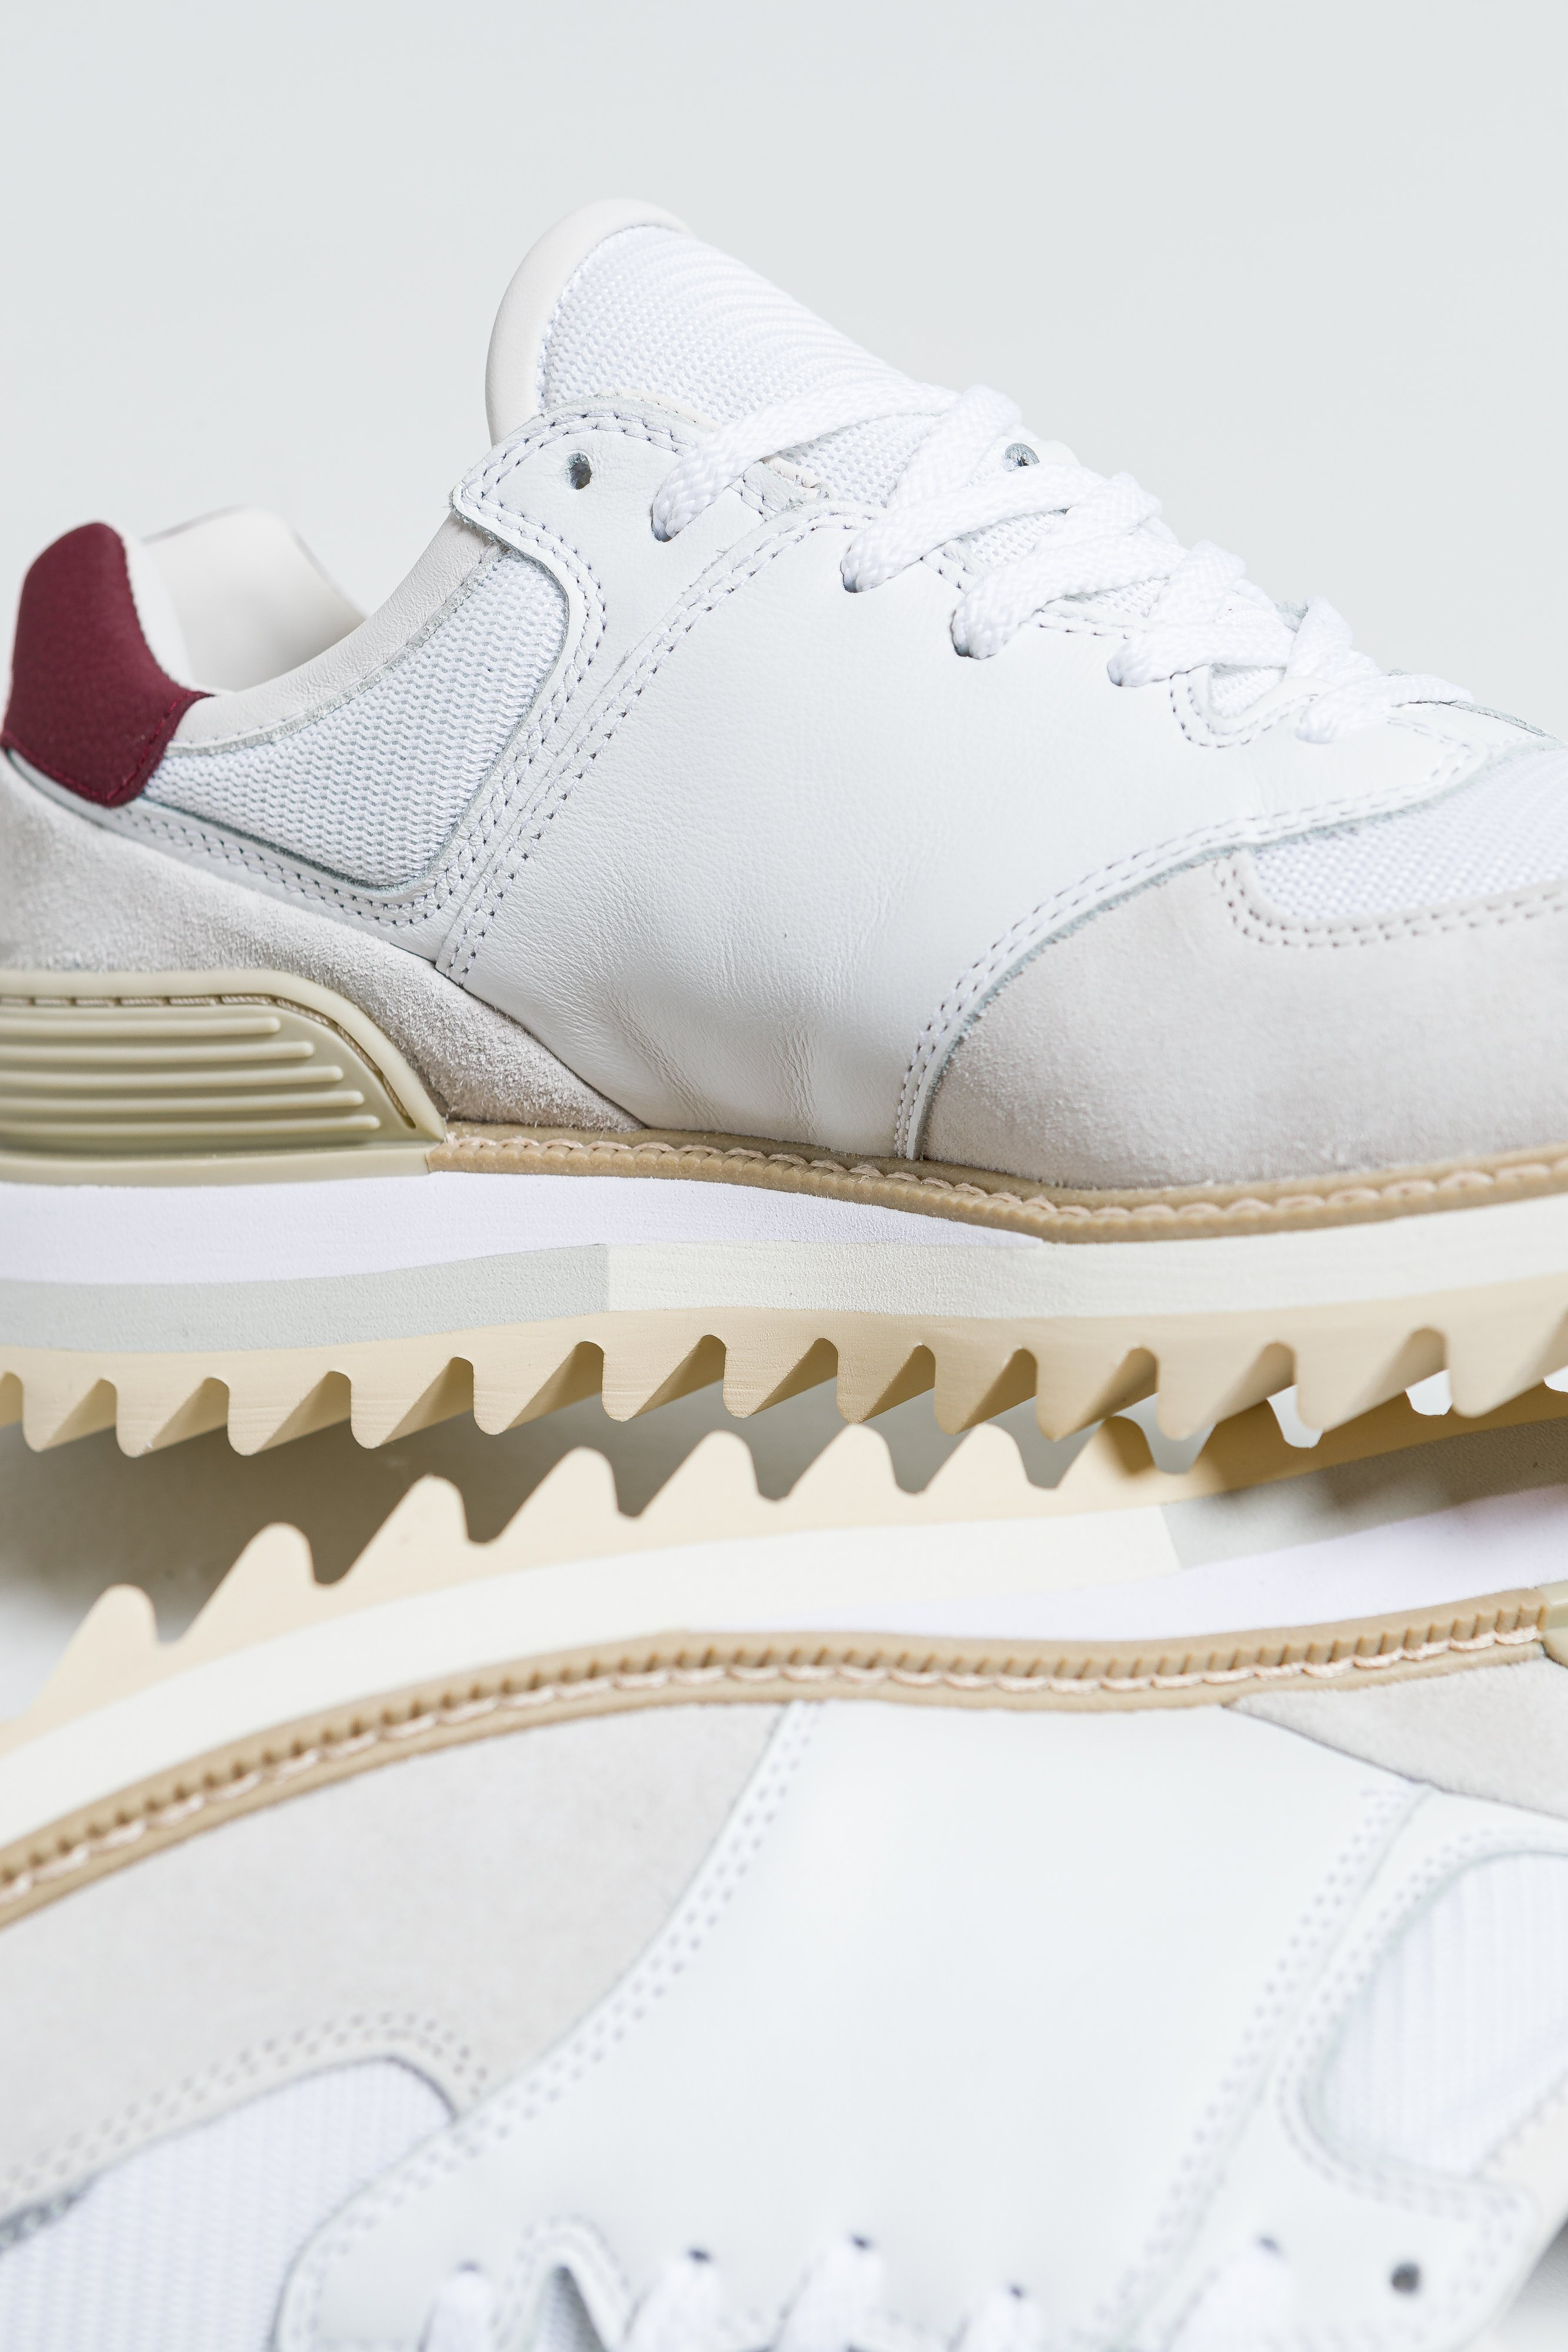 Up There Store - New Balance Tokyo Design Studio MS574TDS + MS574TDU 'Ripple Sole'